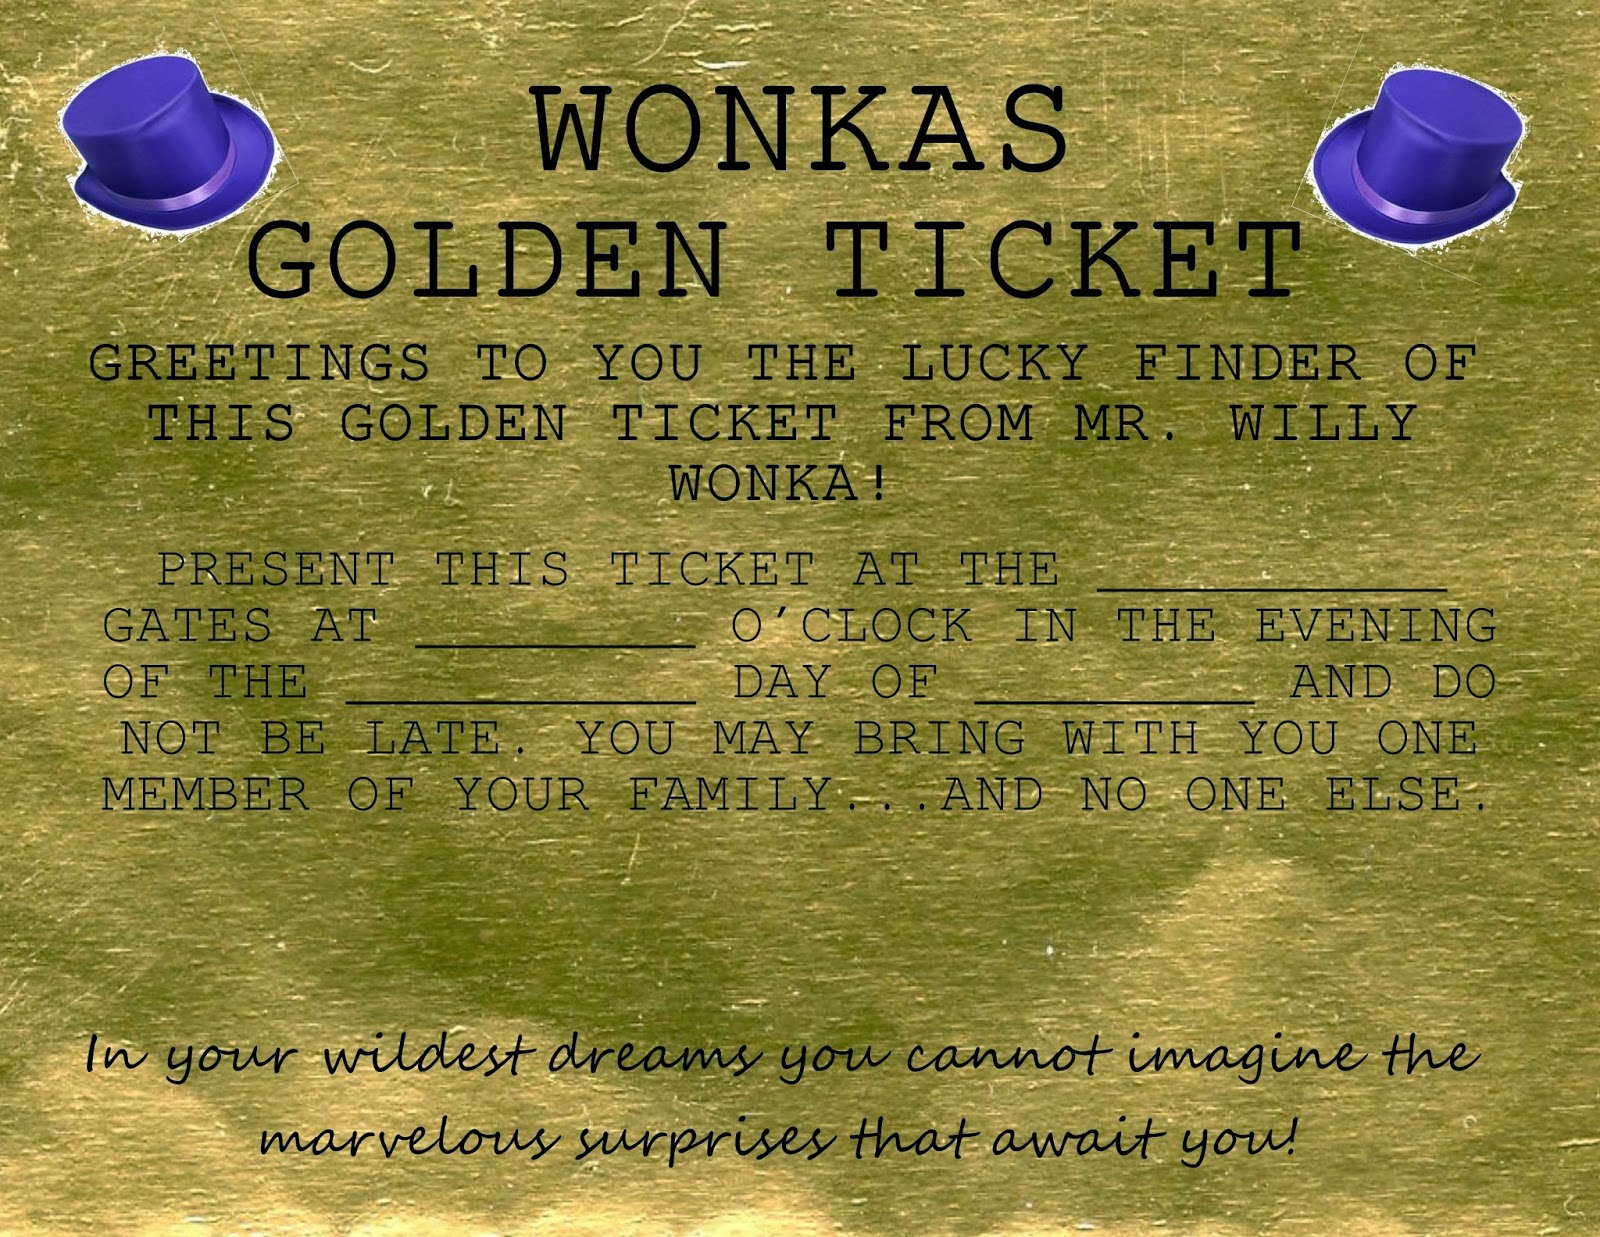 Golden Ticket Template Free GOLDEN%2BTICKET%2BDC%2B %2BPage%2B001 Golden Ticket  Template Free Make Your Own Concert Tickets Make Your Own Concert Tickets  Make Your Own Concert Tickets